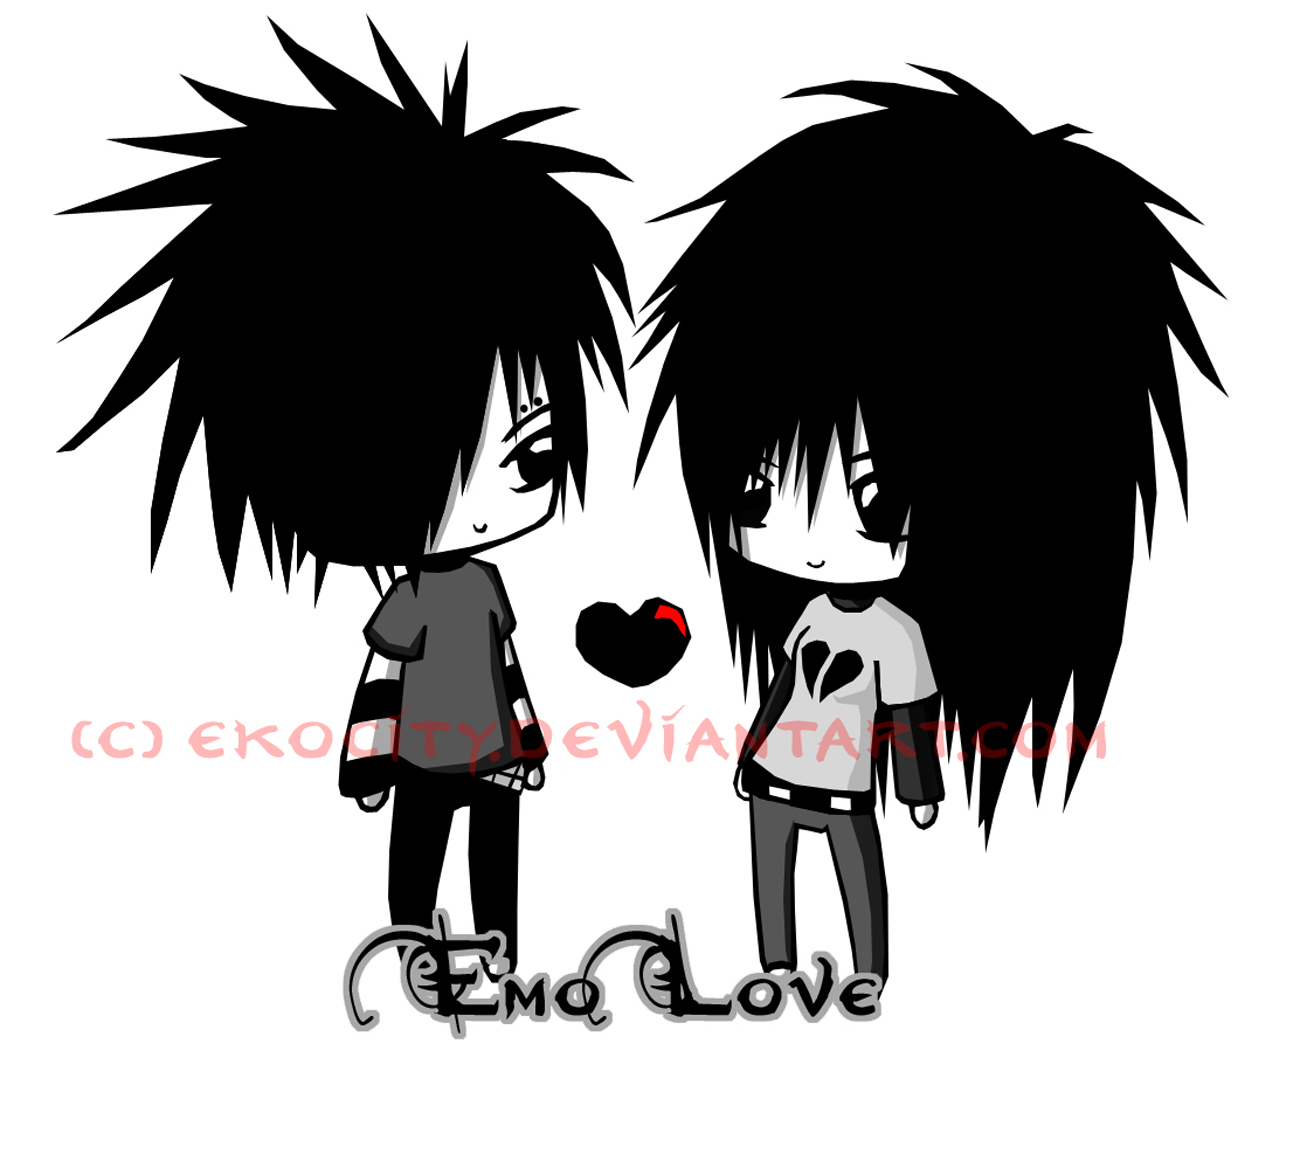 Download free wallpapers emo love - Emo anime wallpaper ...